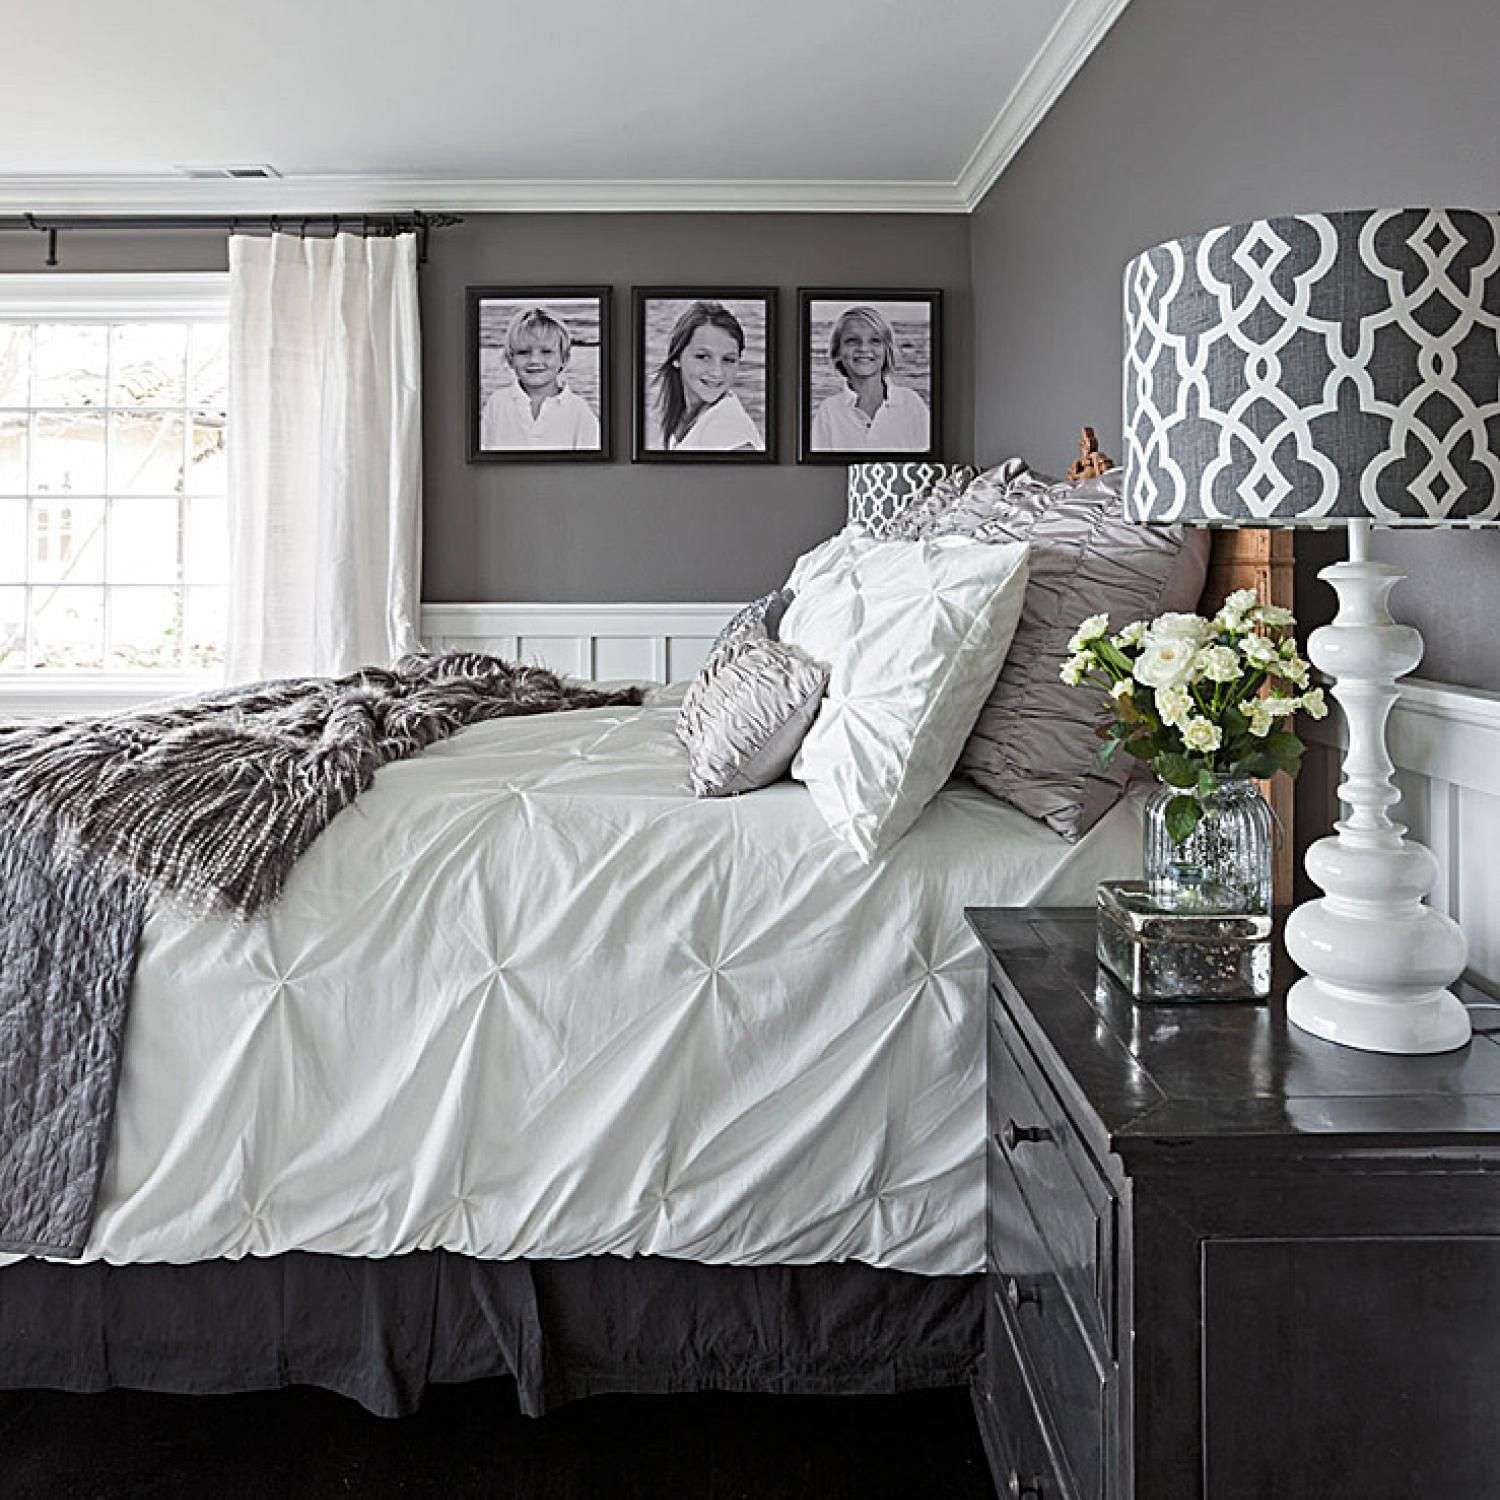 Gorgeous gray and white bedrooms bedrooms gray and for Bedroom color inspiration pinterest